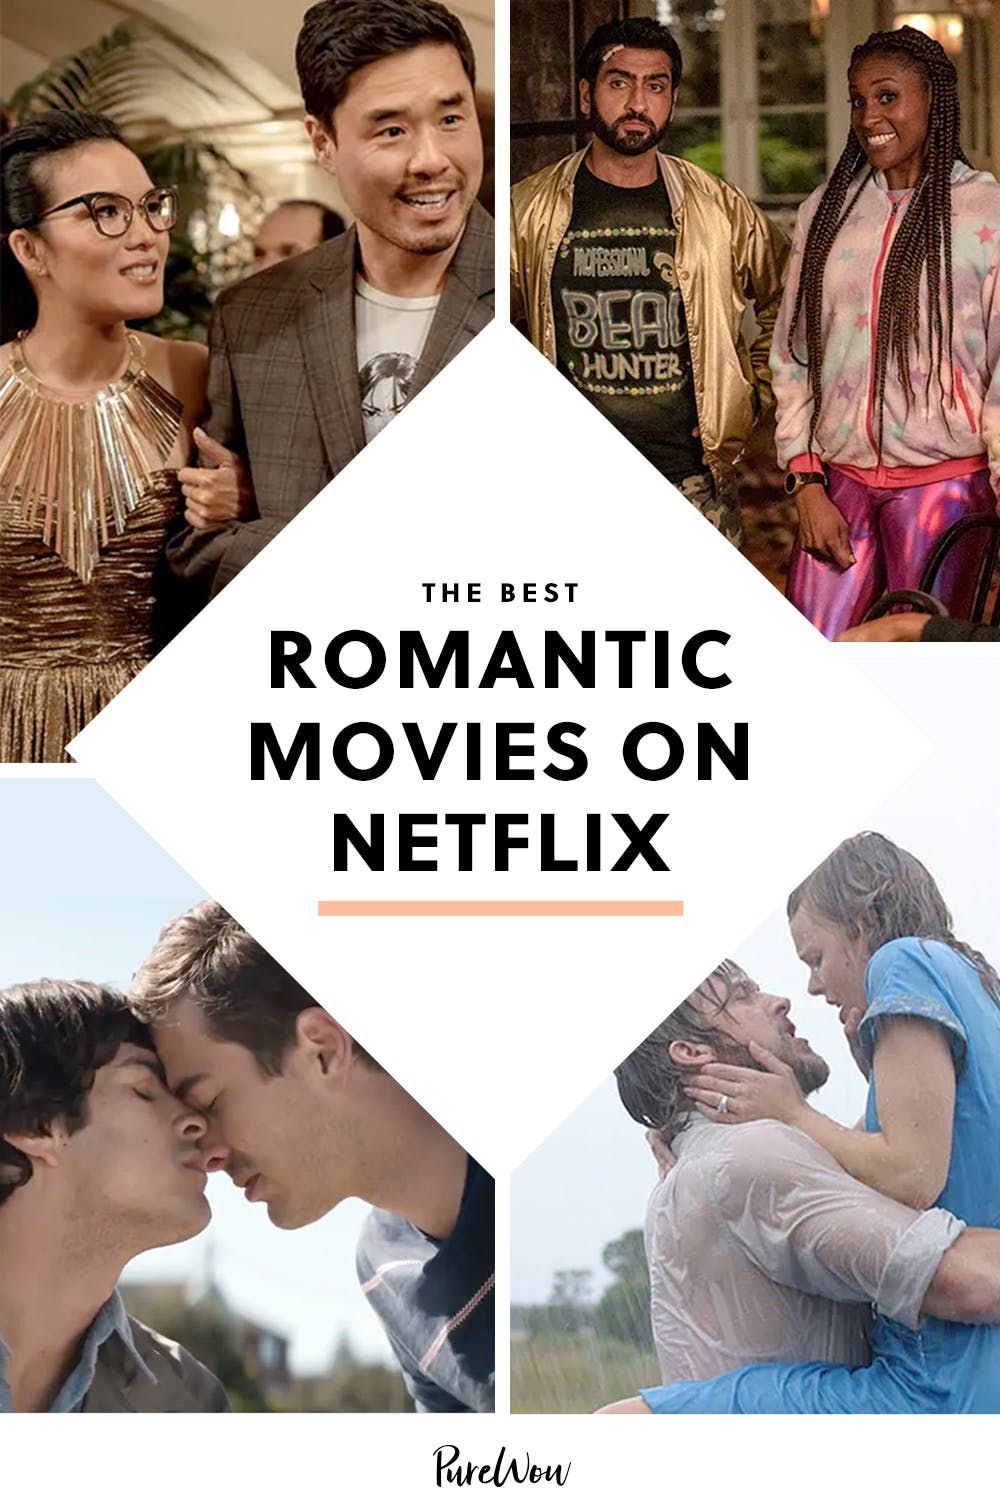 Tension movies with romantic 12 Best